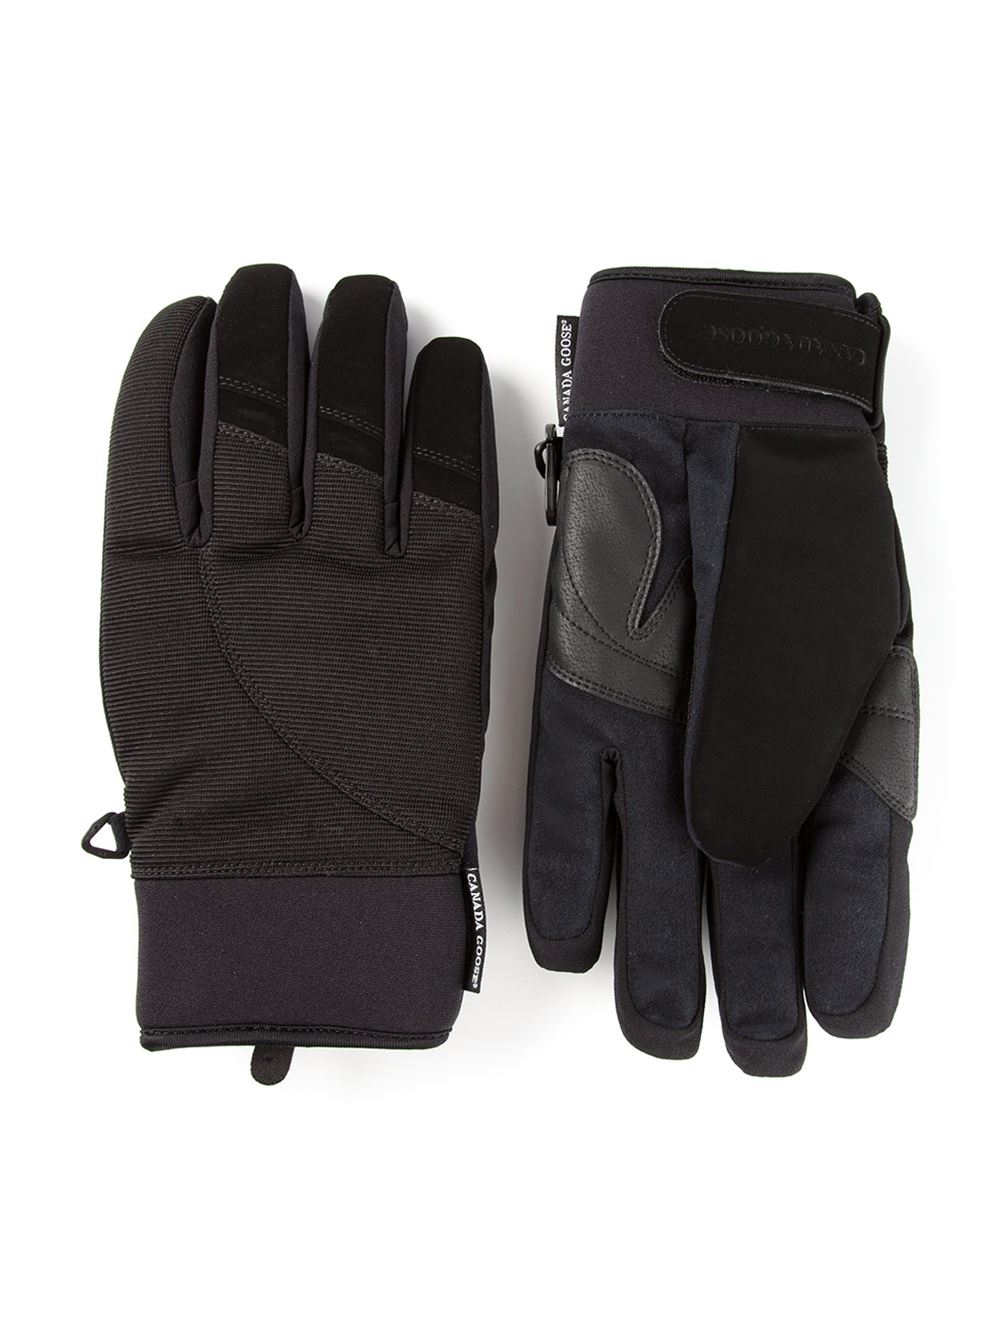 Canada Goose Driving Gloves Images Gloves And Descriptions